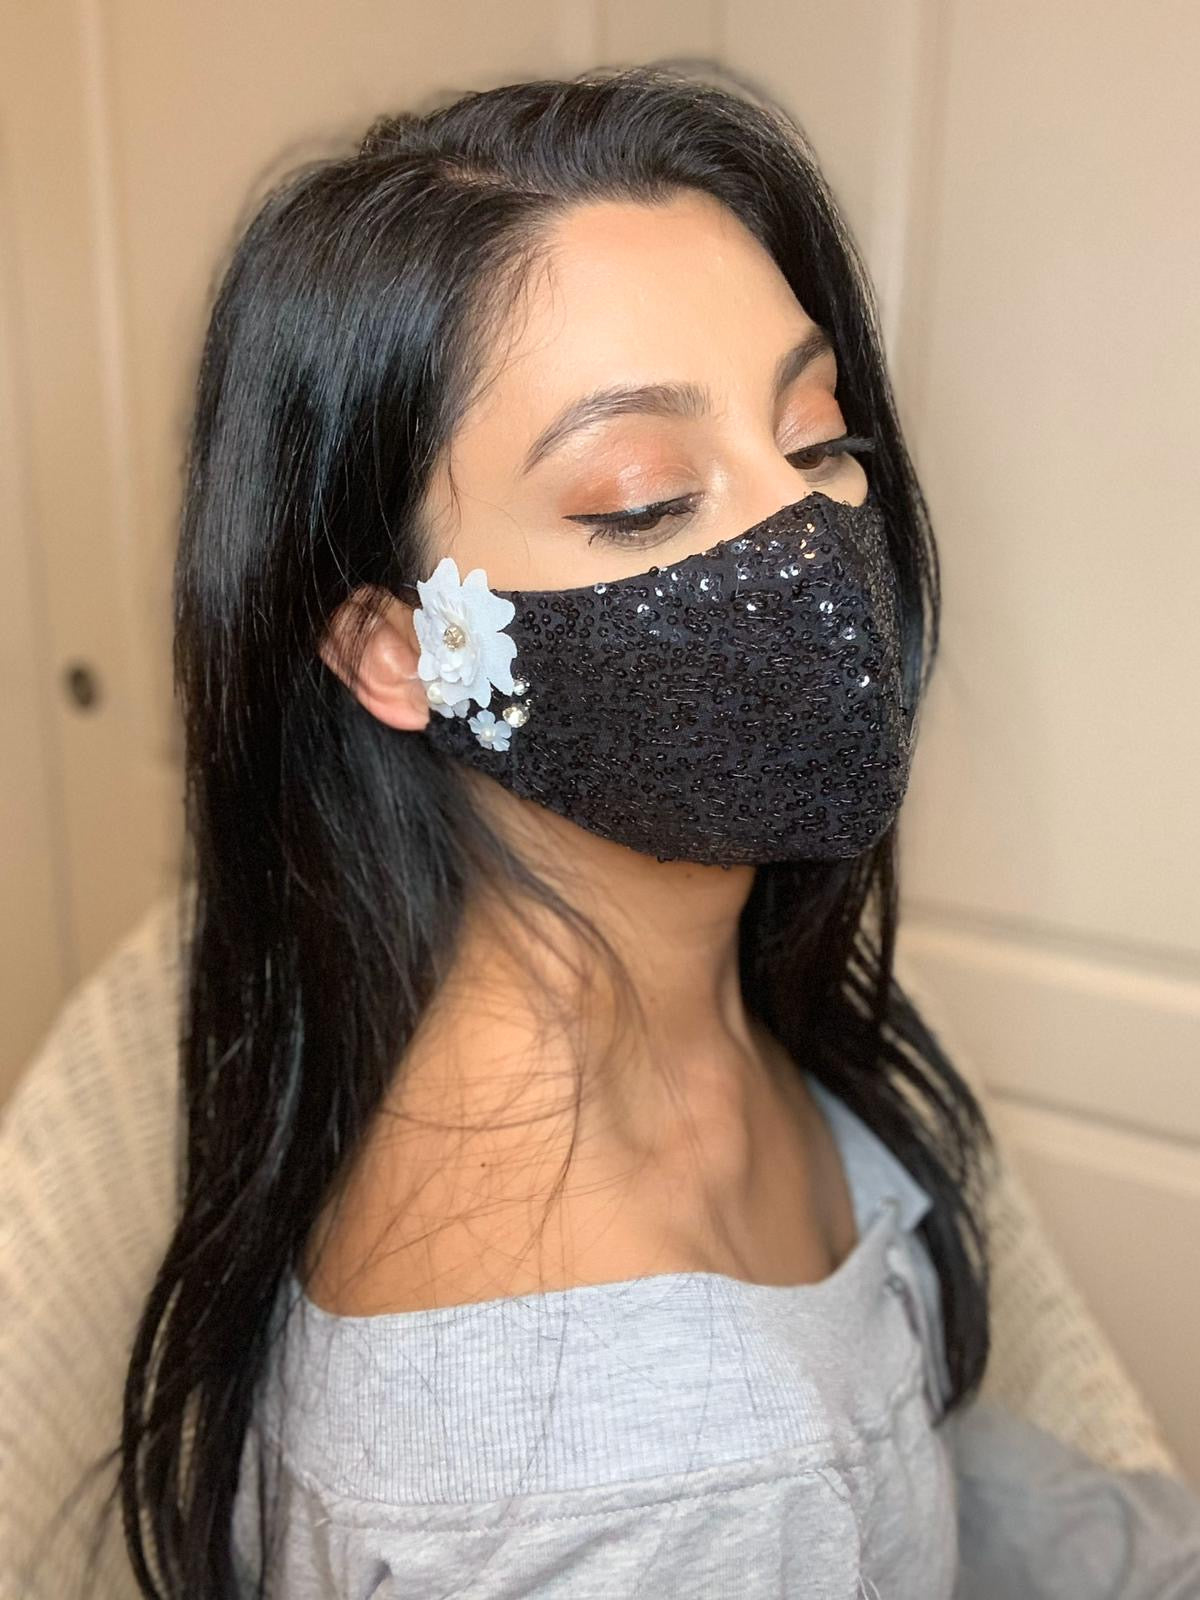 Sequin Face Mask w/White Applique Work - bAnuDesigns